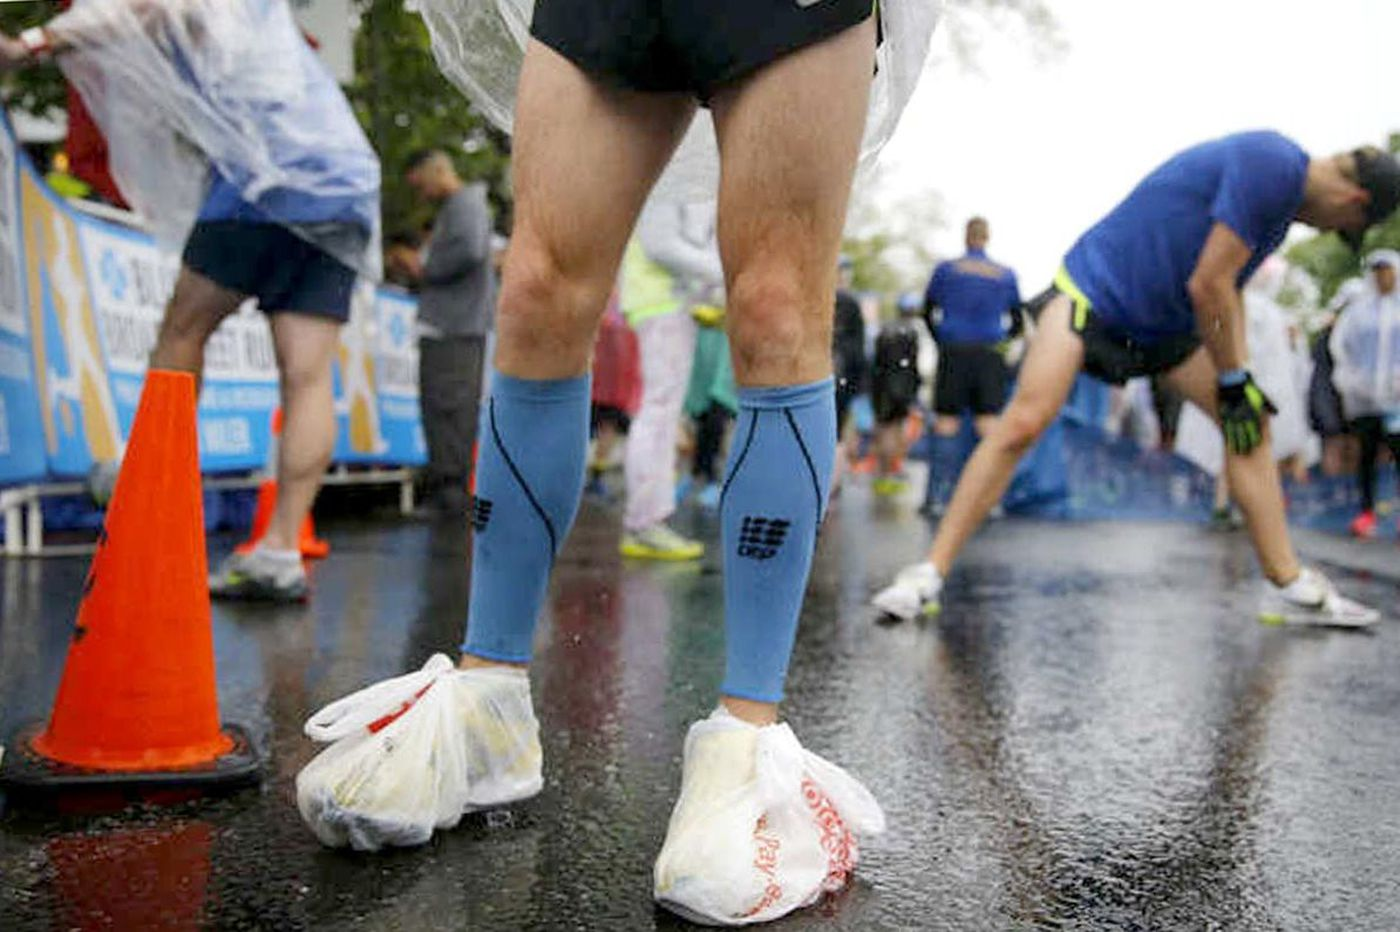 Do athletes really need compression socks and tights to boost performance?